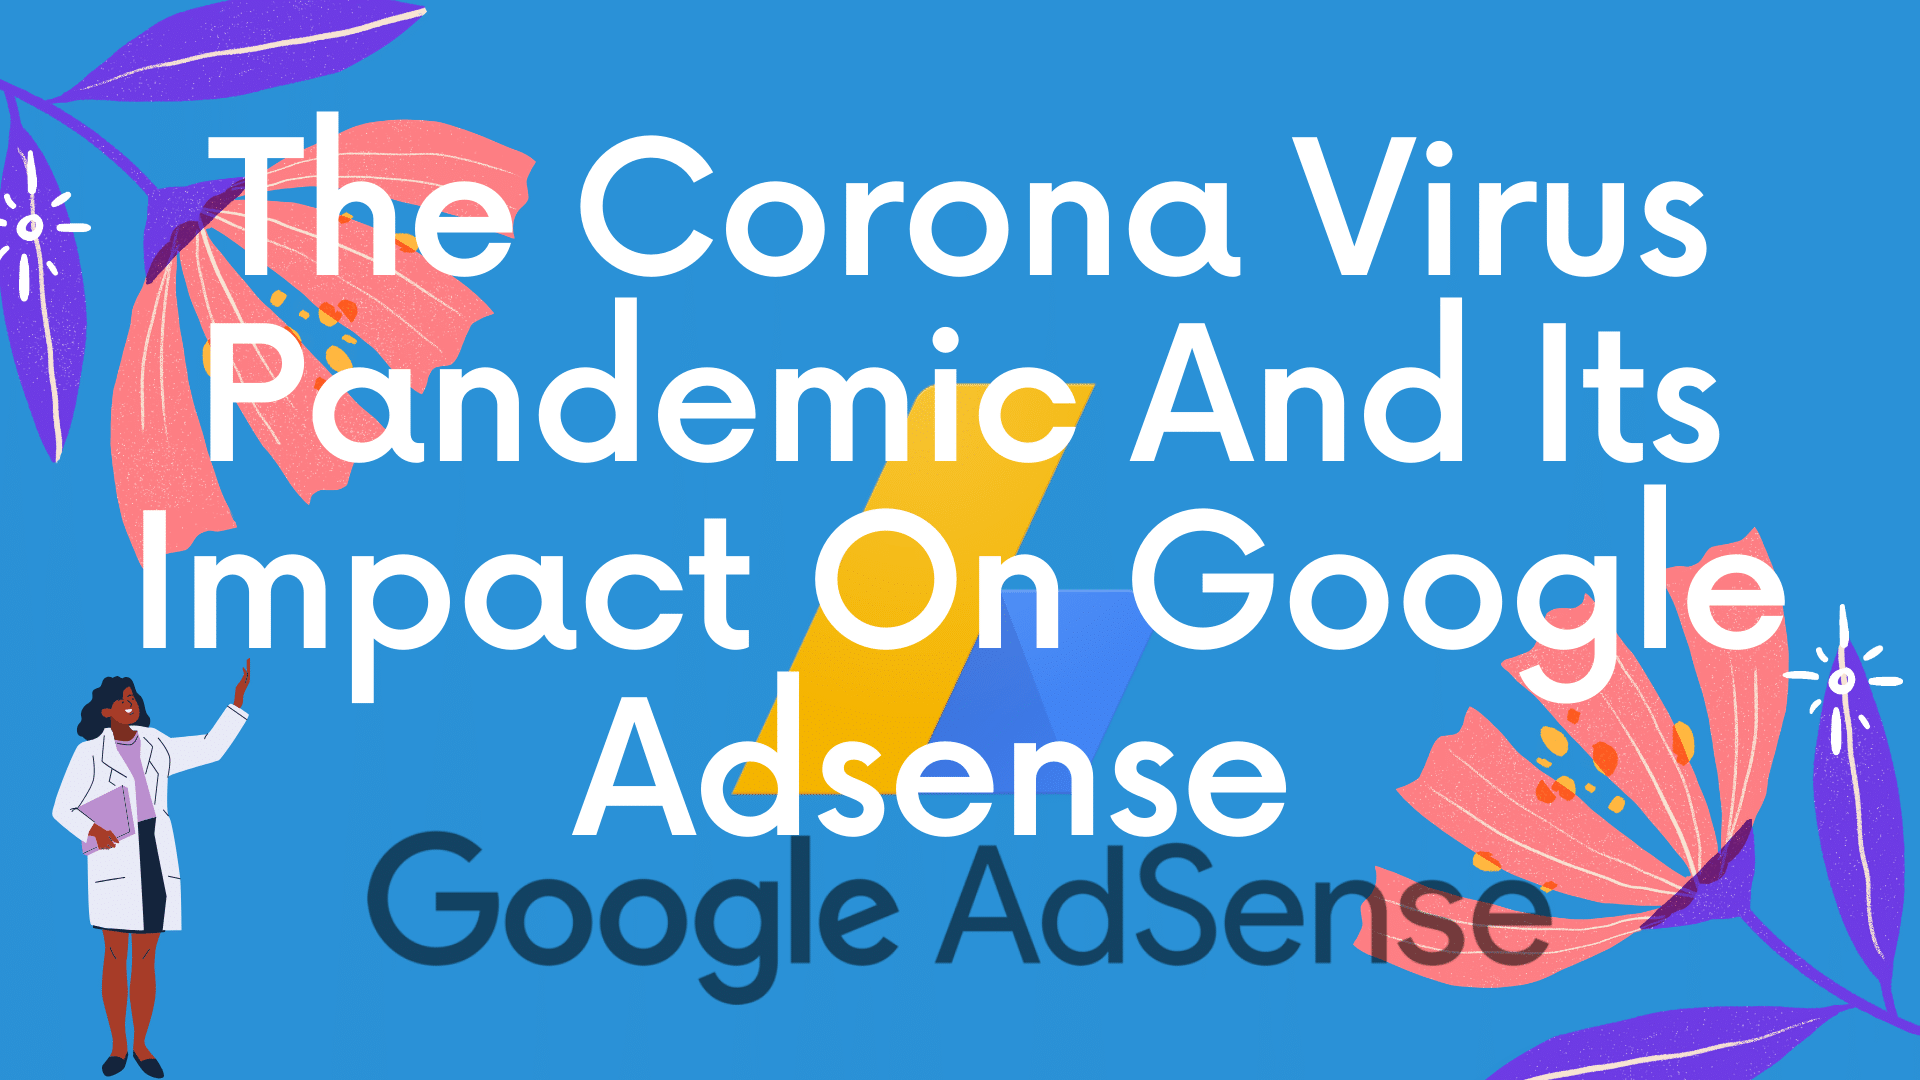 The CoronaVirus Pandemic And its Impact On Google Adsense